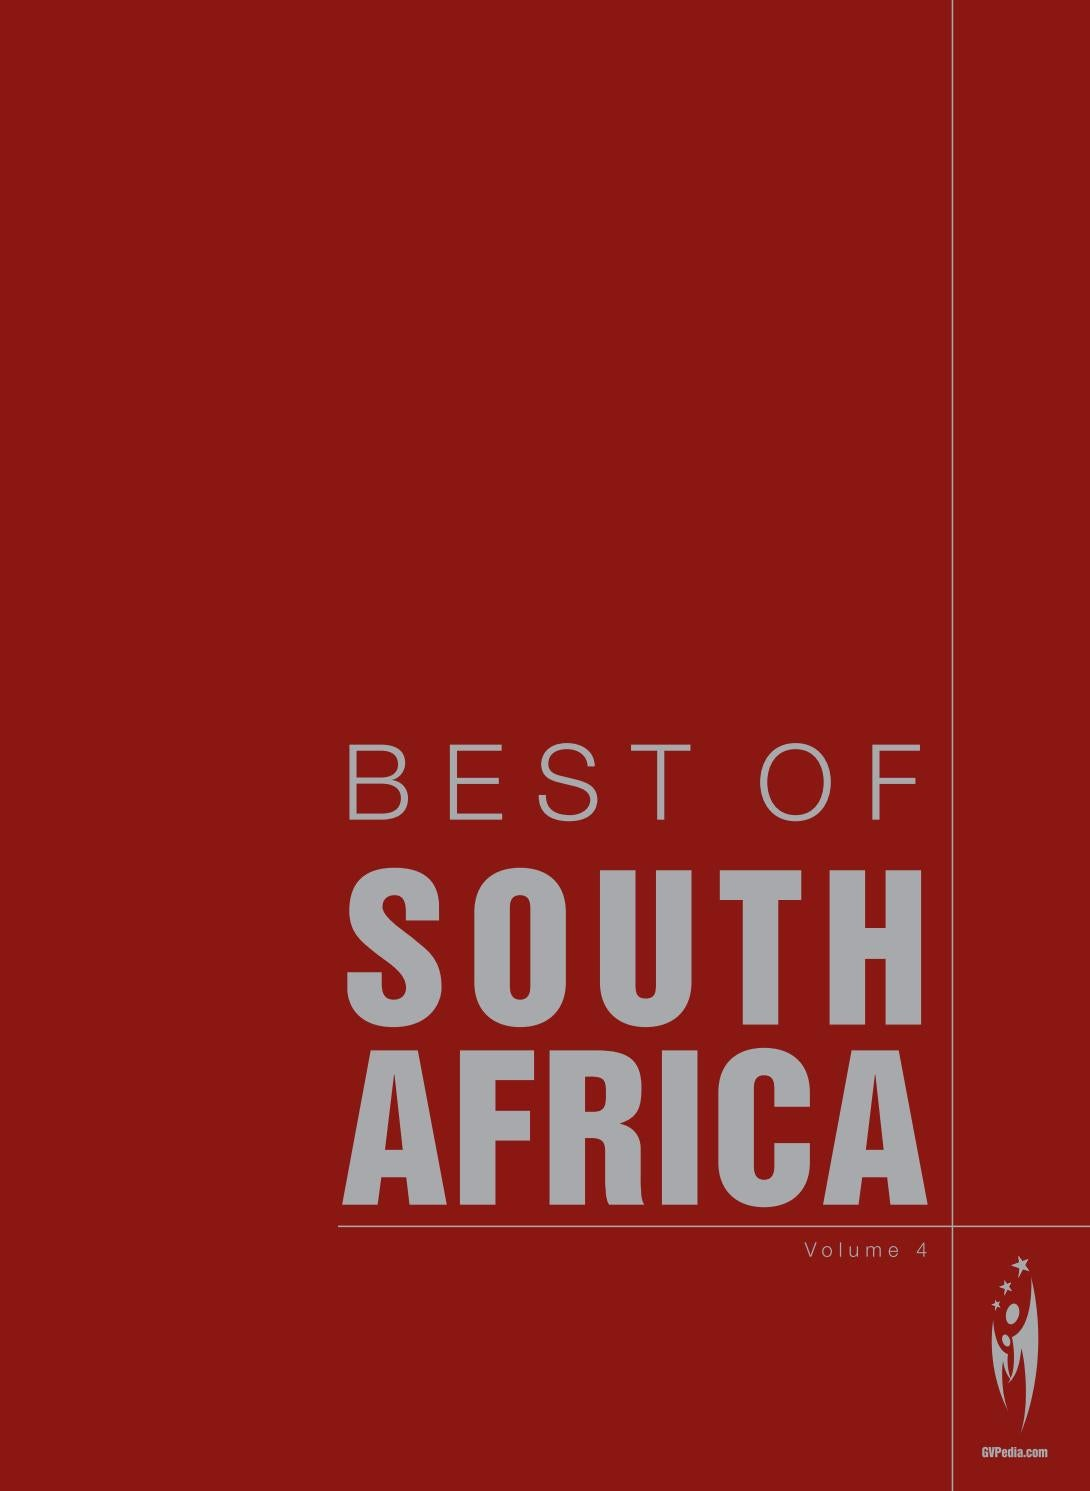 1adb3d4939d BEST OF SOUTH AFRICA - Volume 4 by Sven Boermeester - issuu